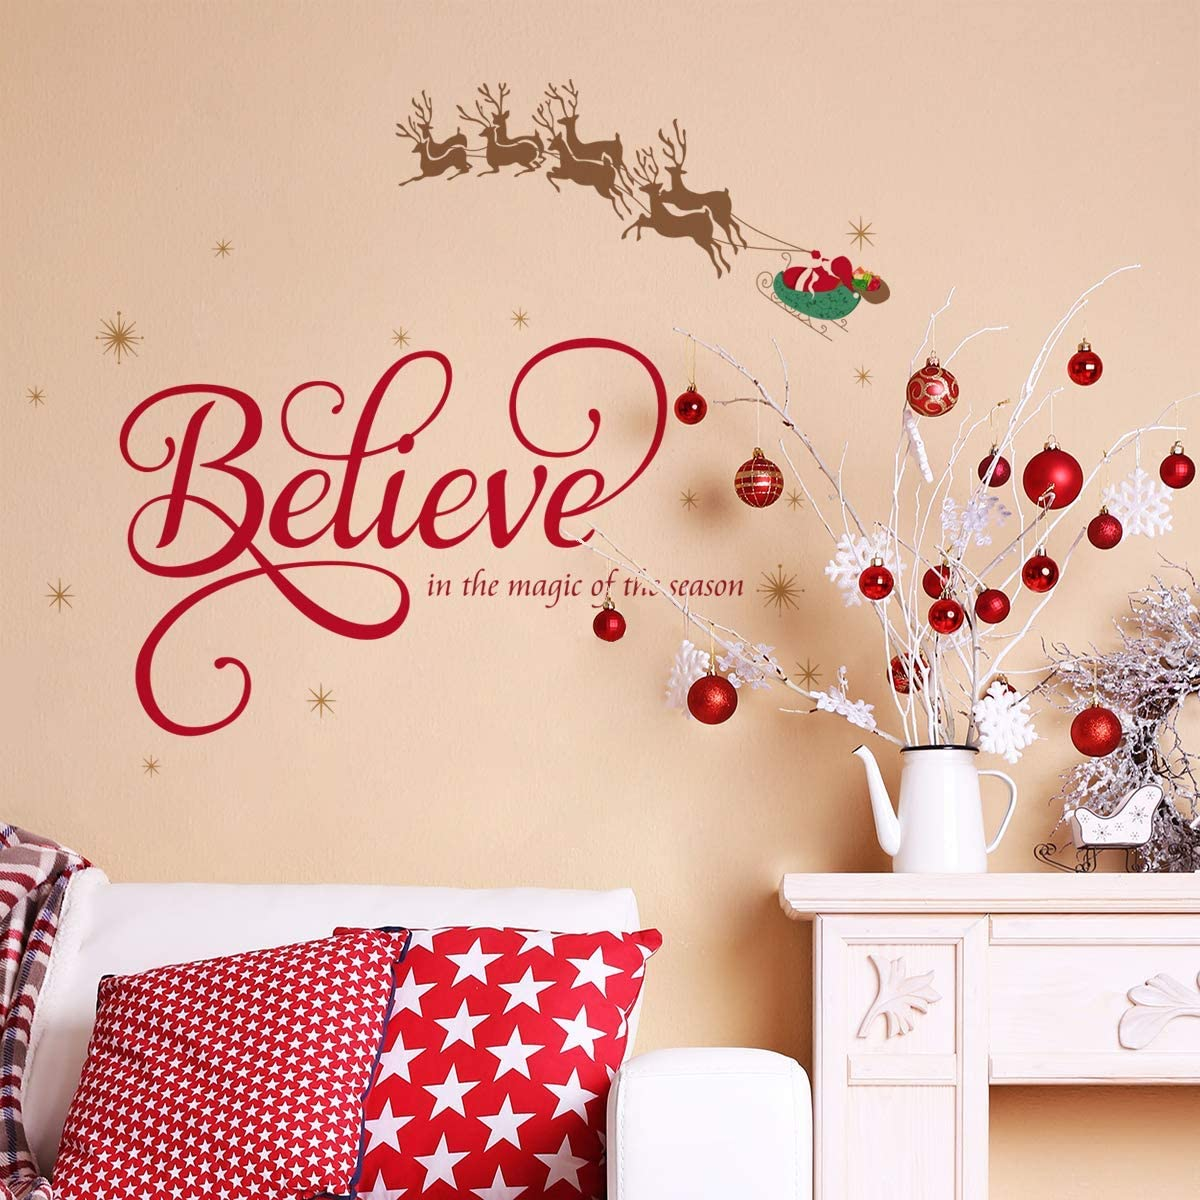 """ufengke """"Believe Quote Wall Stickers Santa Claus Reindeer Snowfalkes Window Clings Decal for Showcase Home Decor Merry Christmas Decoration"""